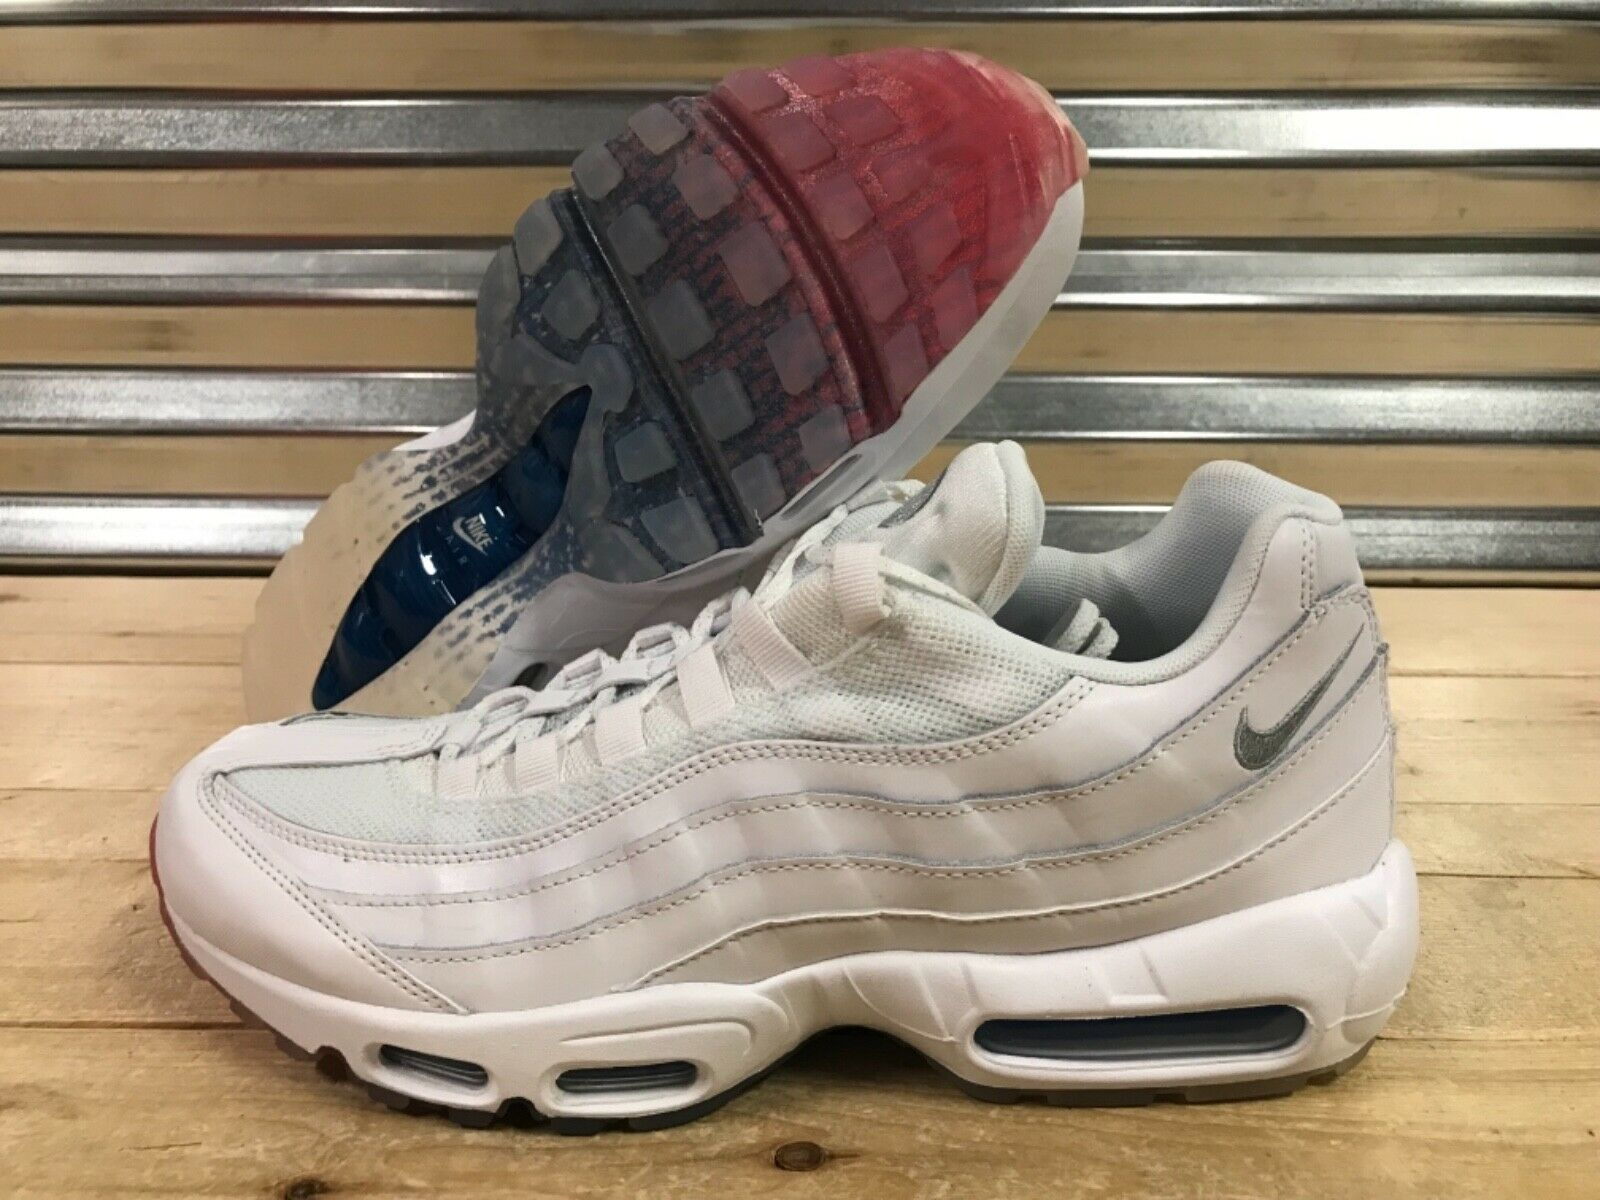 Nike Air Max 95 Running shoes USA July 4 White Glacier bluee Red SZ (AQ7981-100)